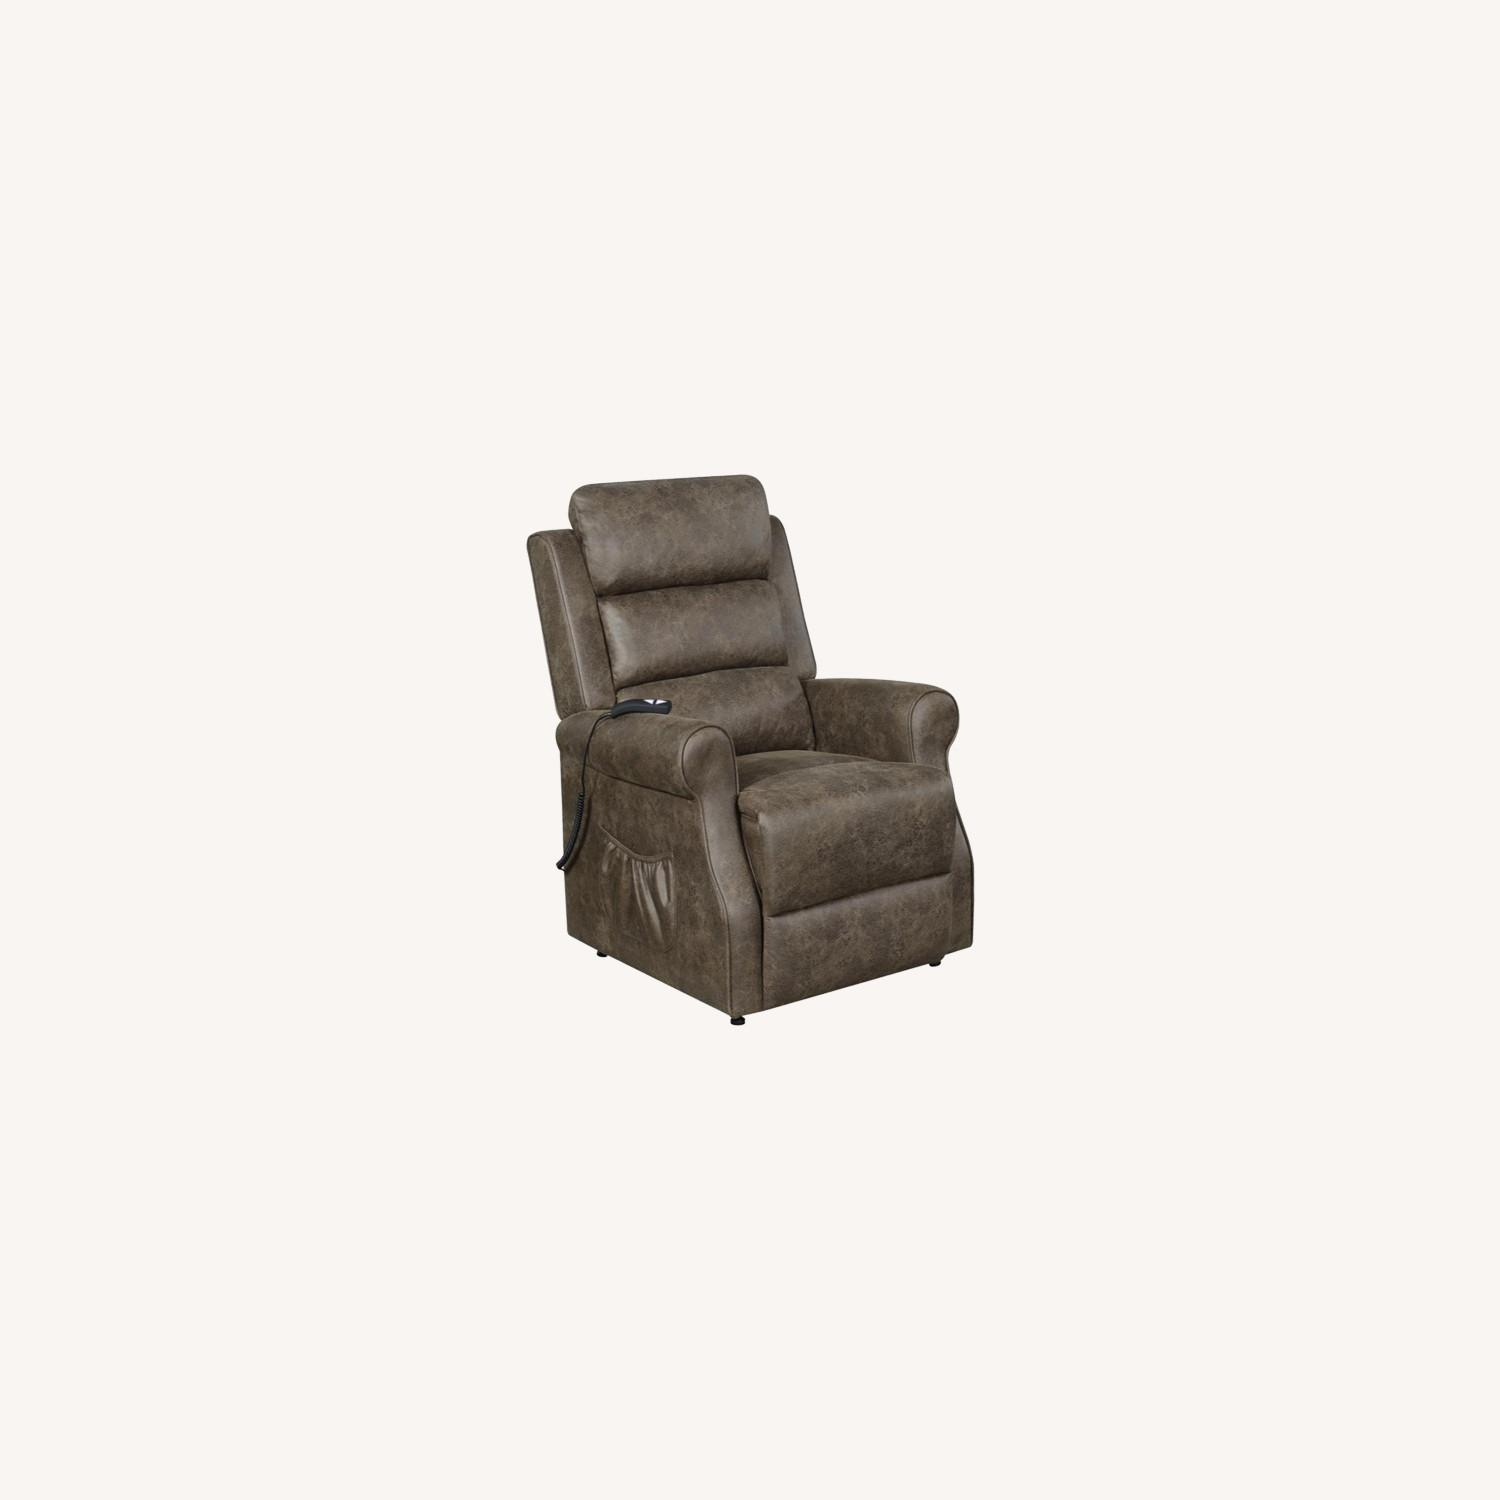 Power Lift Recliner In Brown Faux Suede Upholstery - image-7